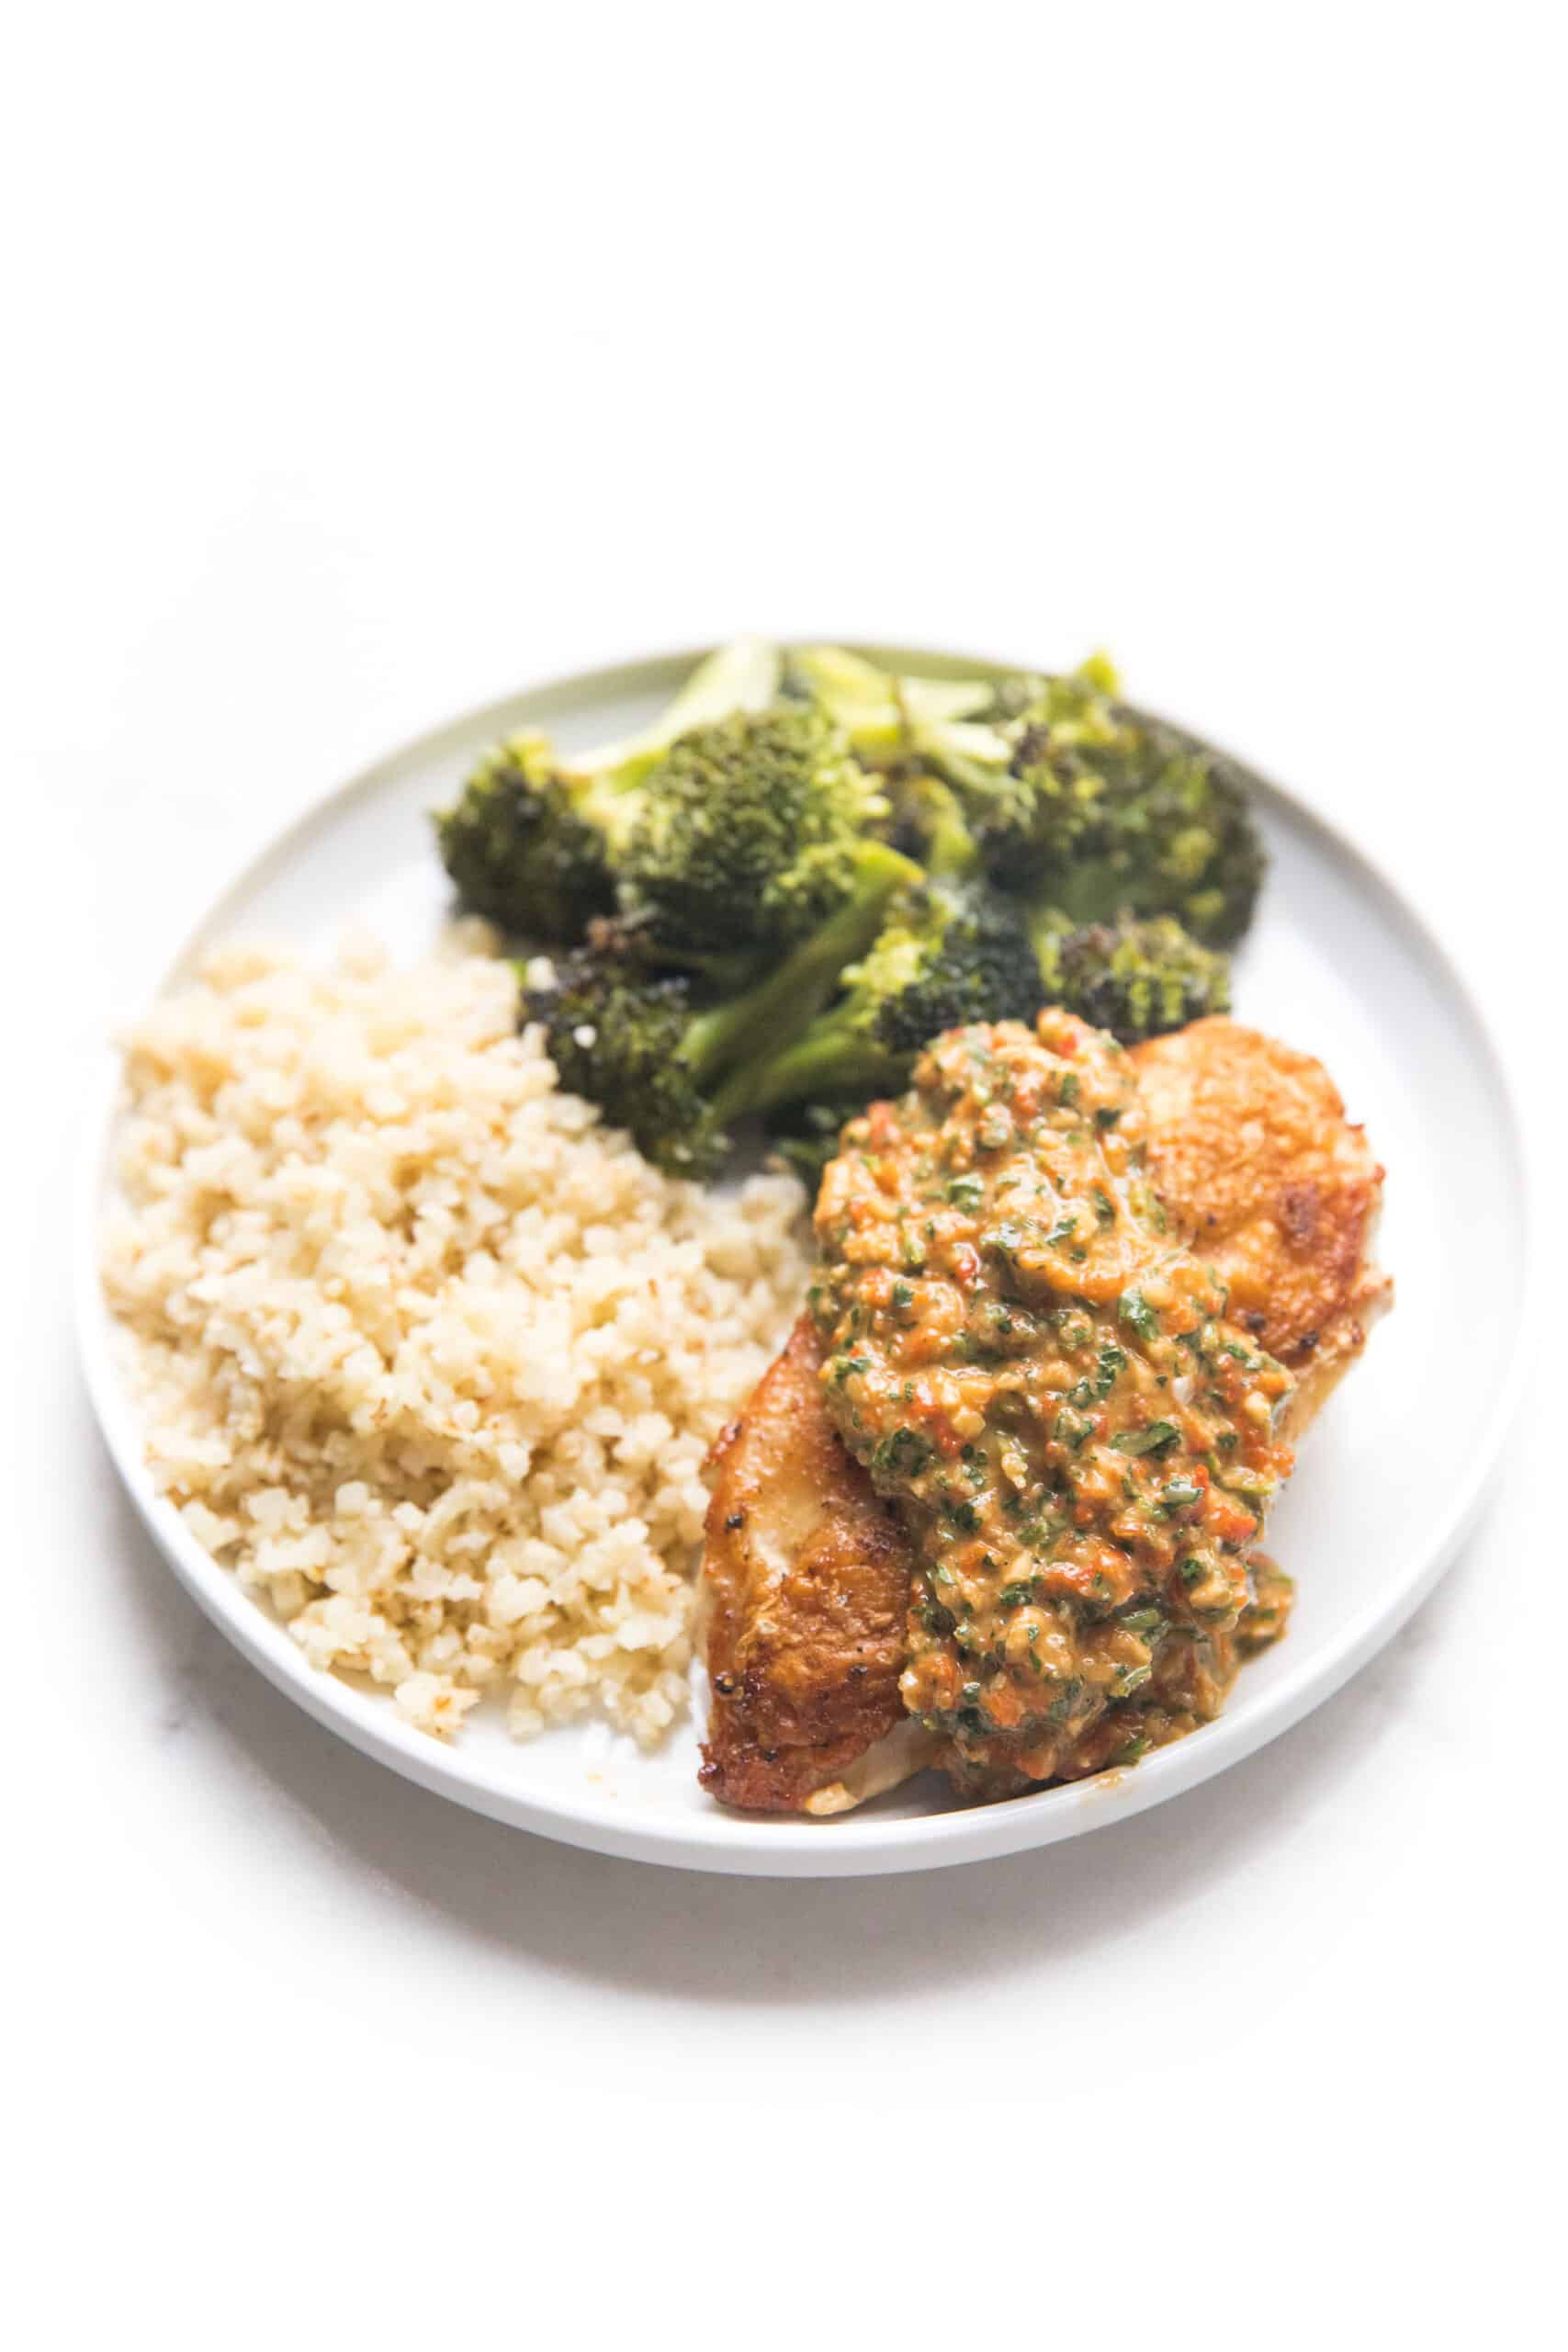 chicken topped with mediterranean salsa on a white plate with broccoli and cauliflower rice